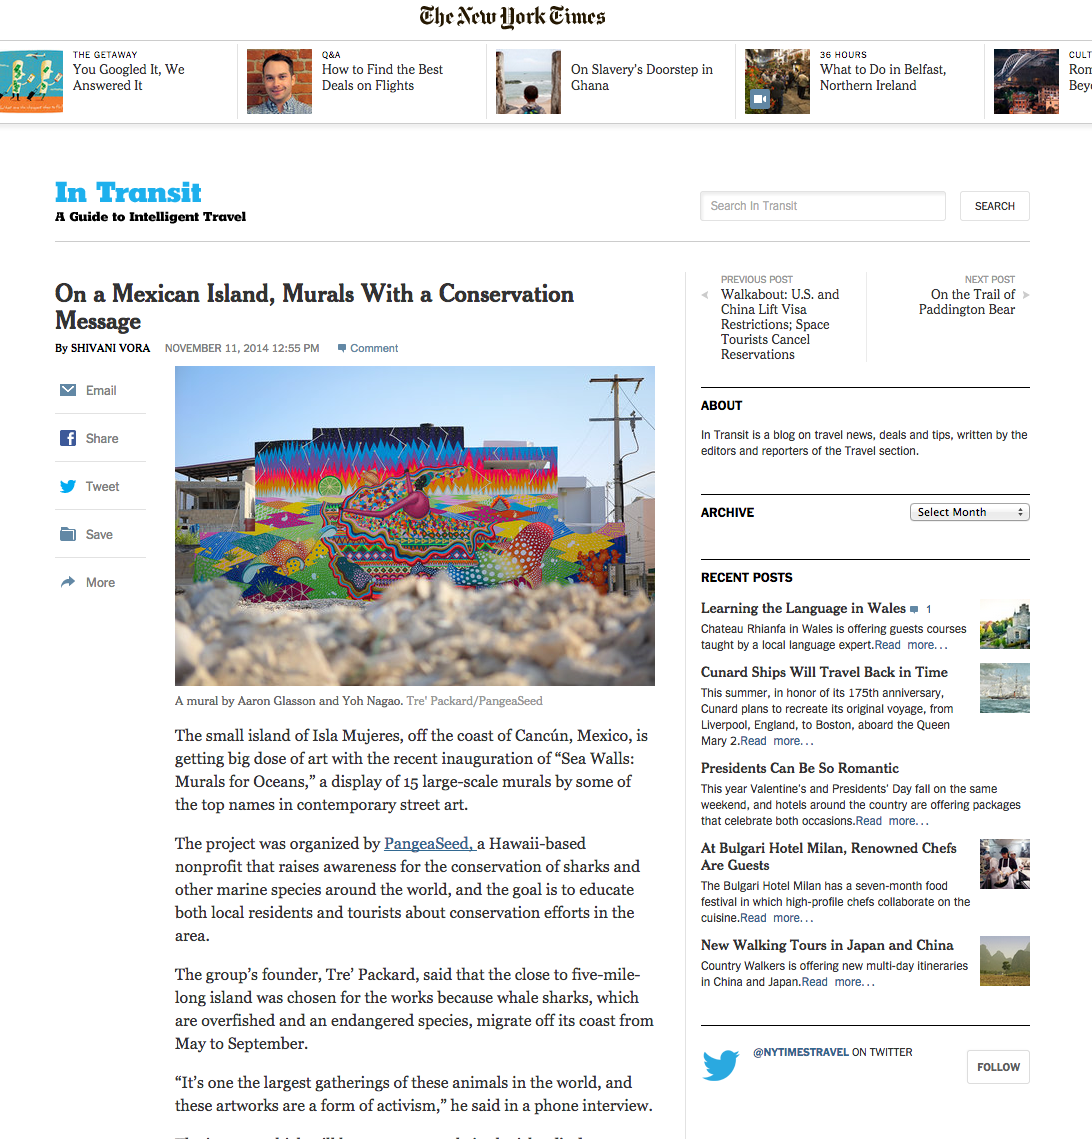 New York Times feature on Sea Walls - Murals For Oceans - Isla Mujeres -   VIEW HERE